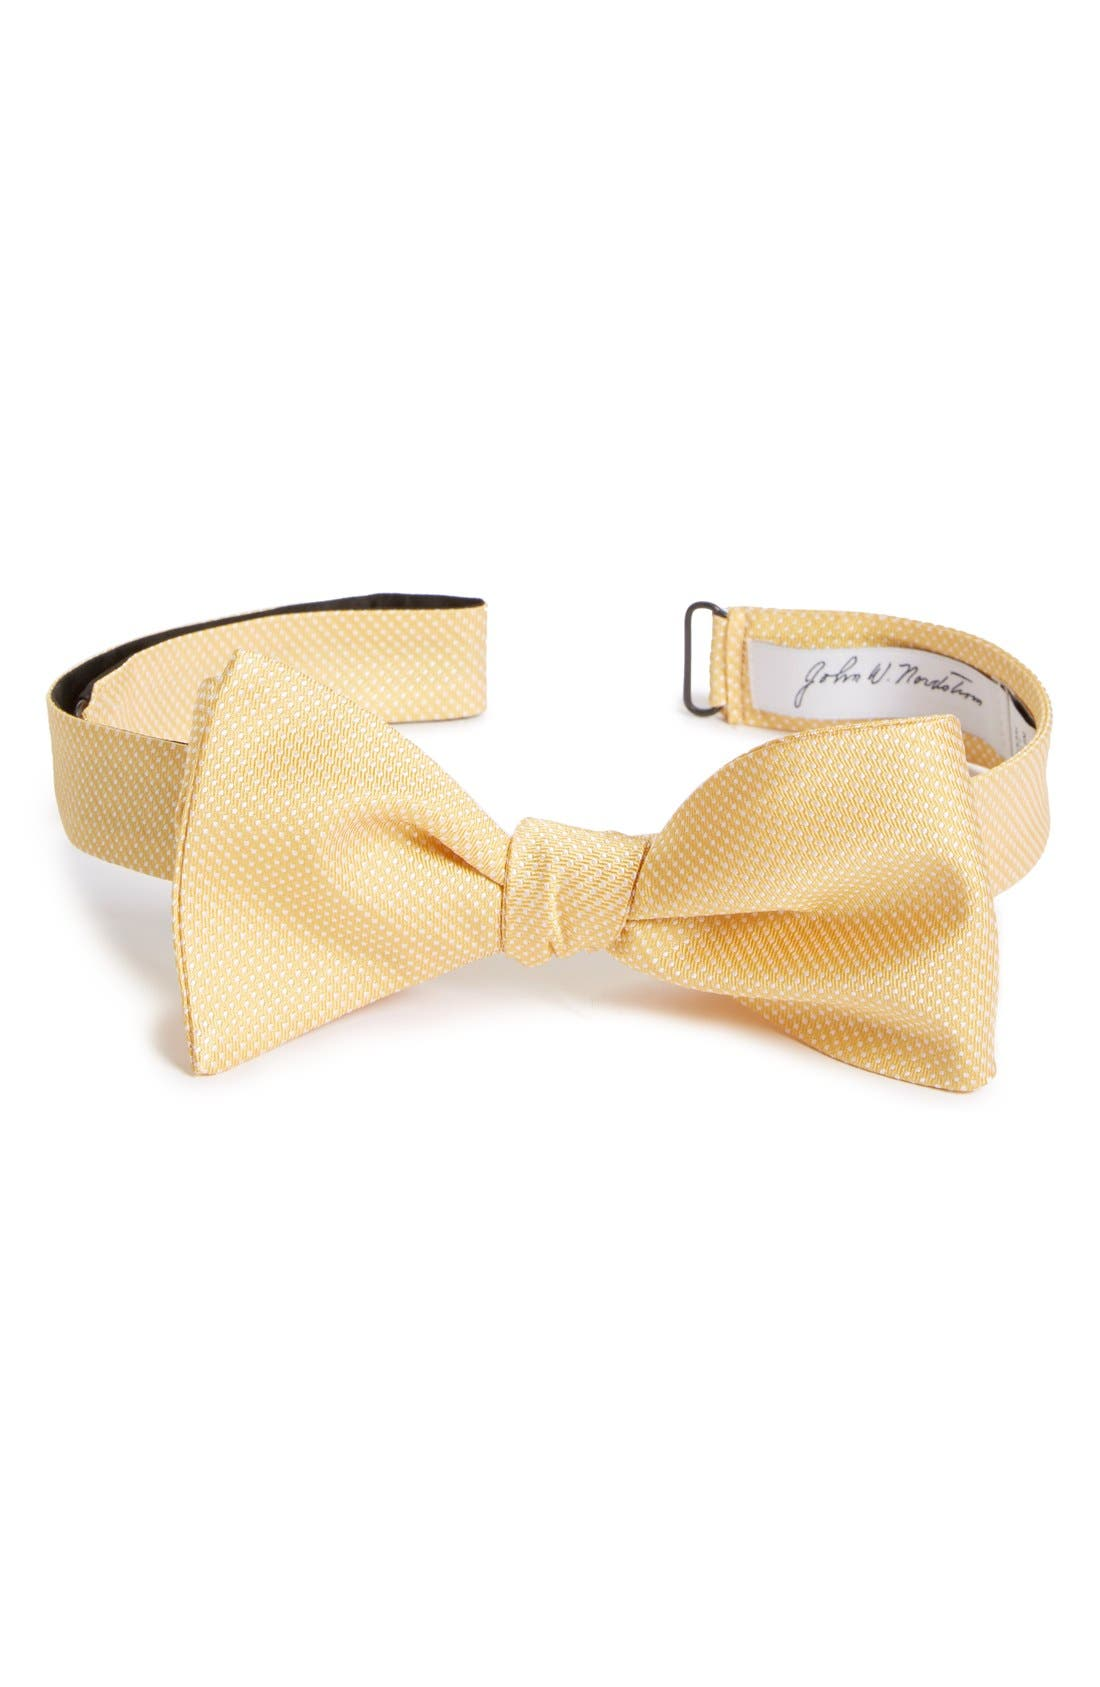 Dot Silk Bow Tie,                         Main,                         color, 700